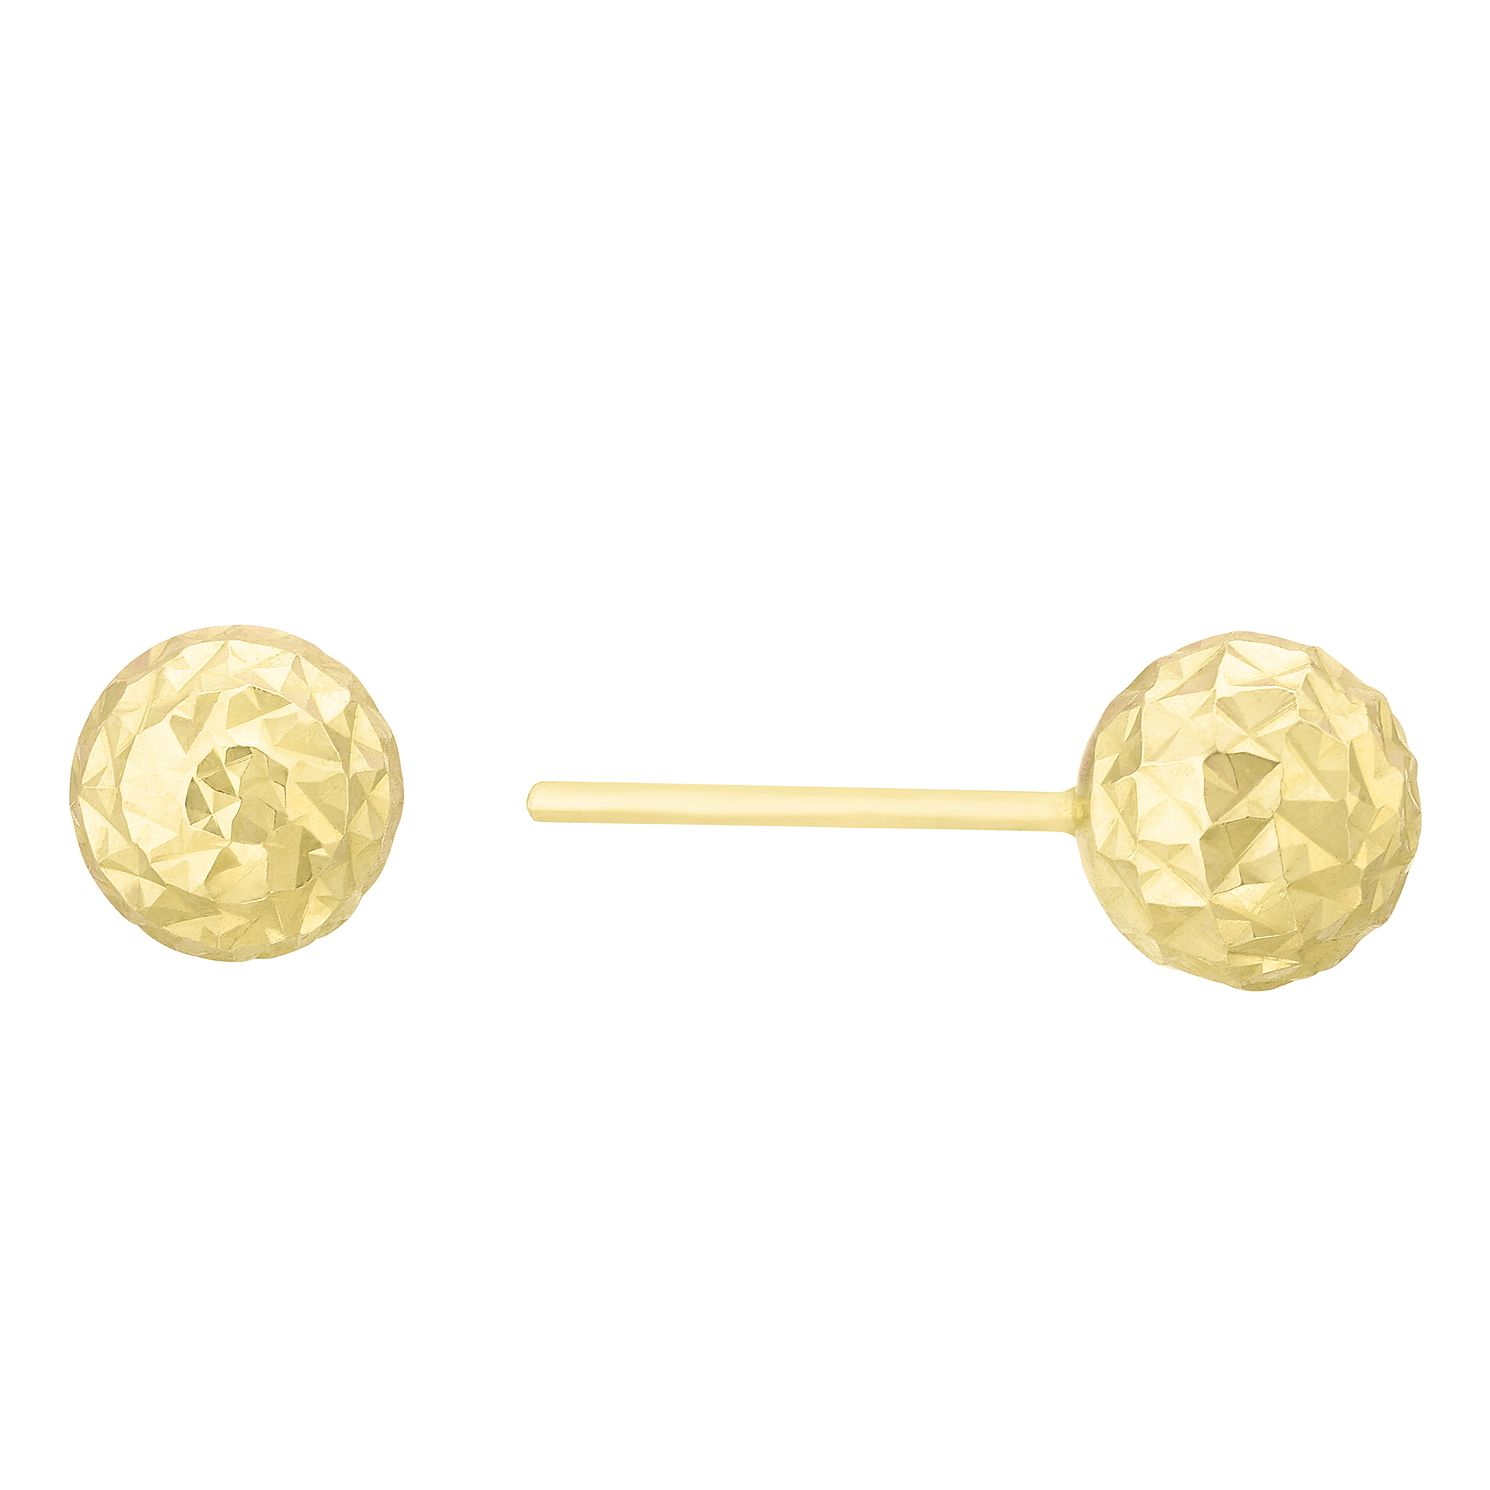 9ct Yellow Gold Diamond Cut Ball Stud Earrings - Product number 8111030